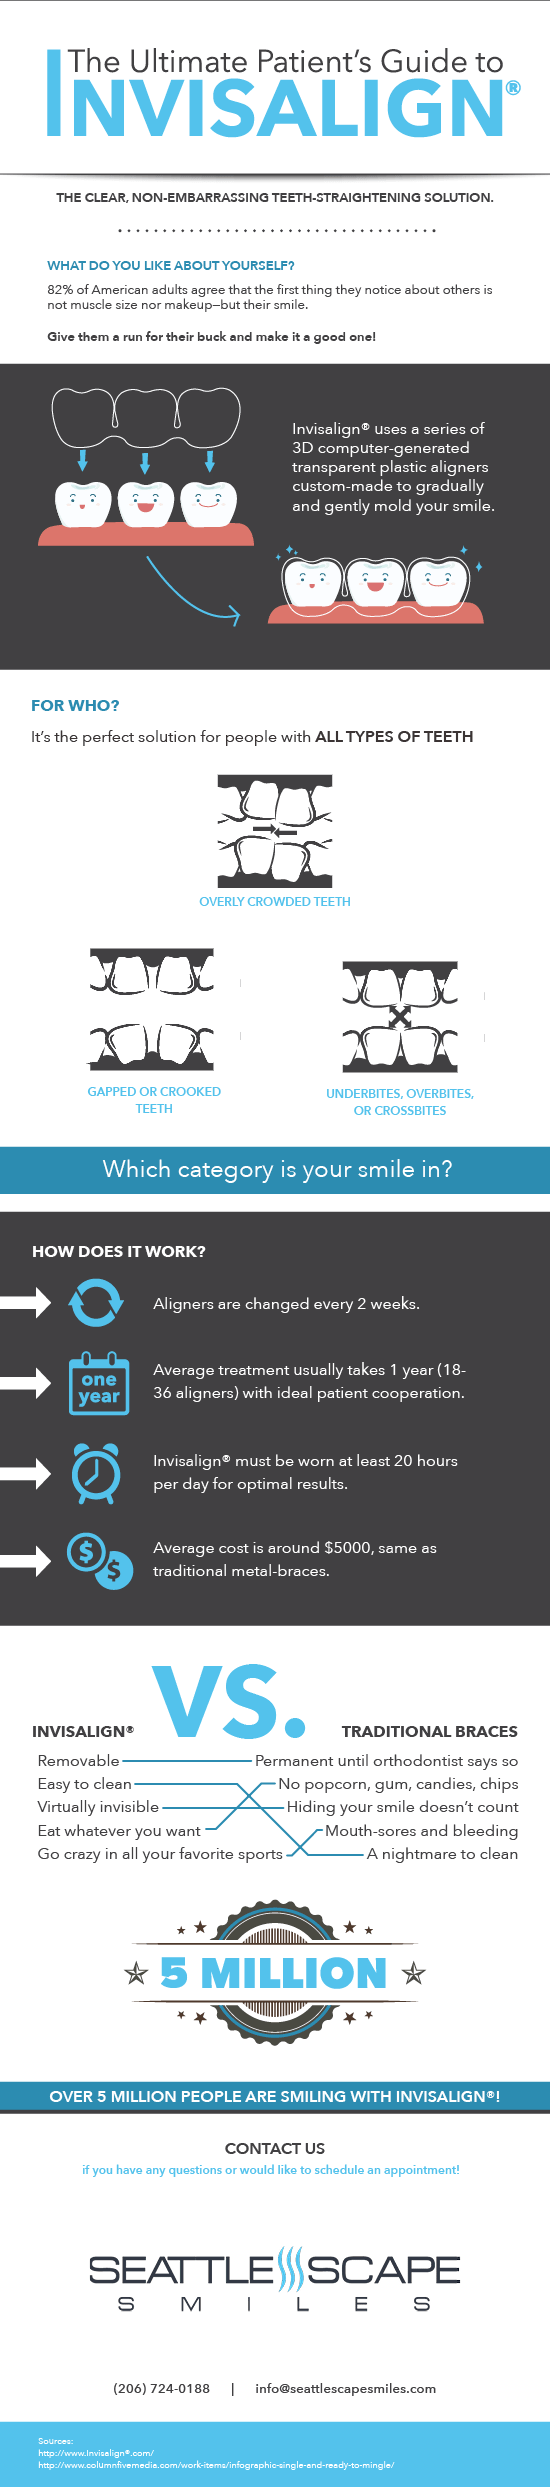 The Ultimate Patient's Guide to Invisalign Treatment Infographic